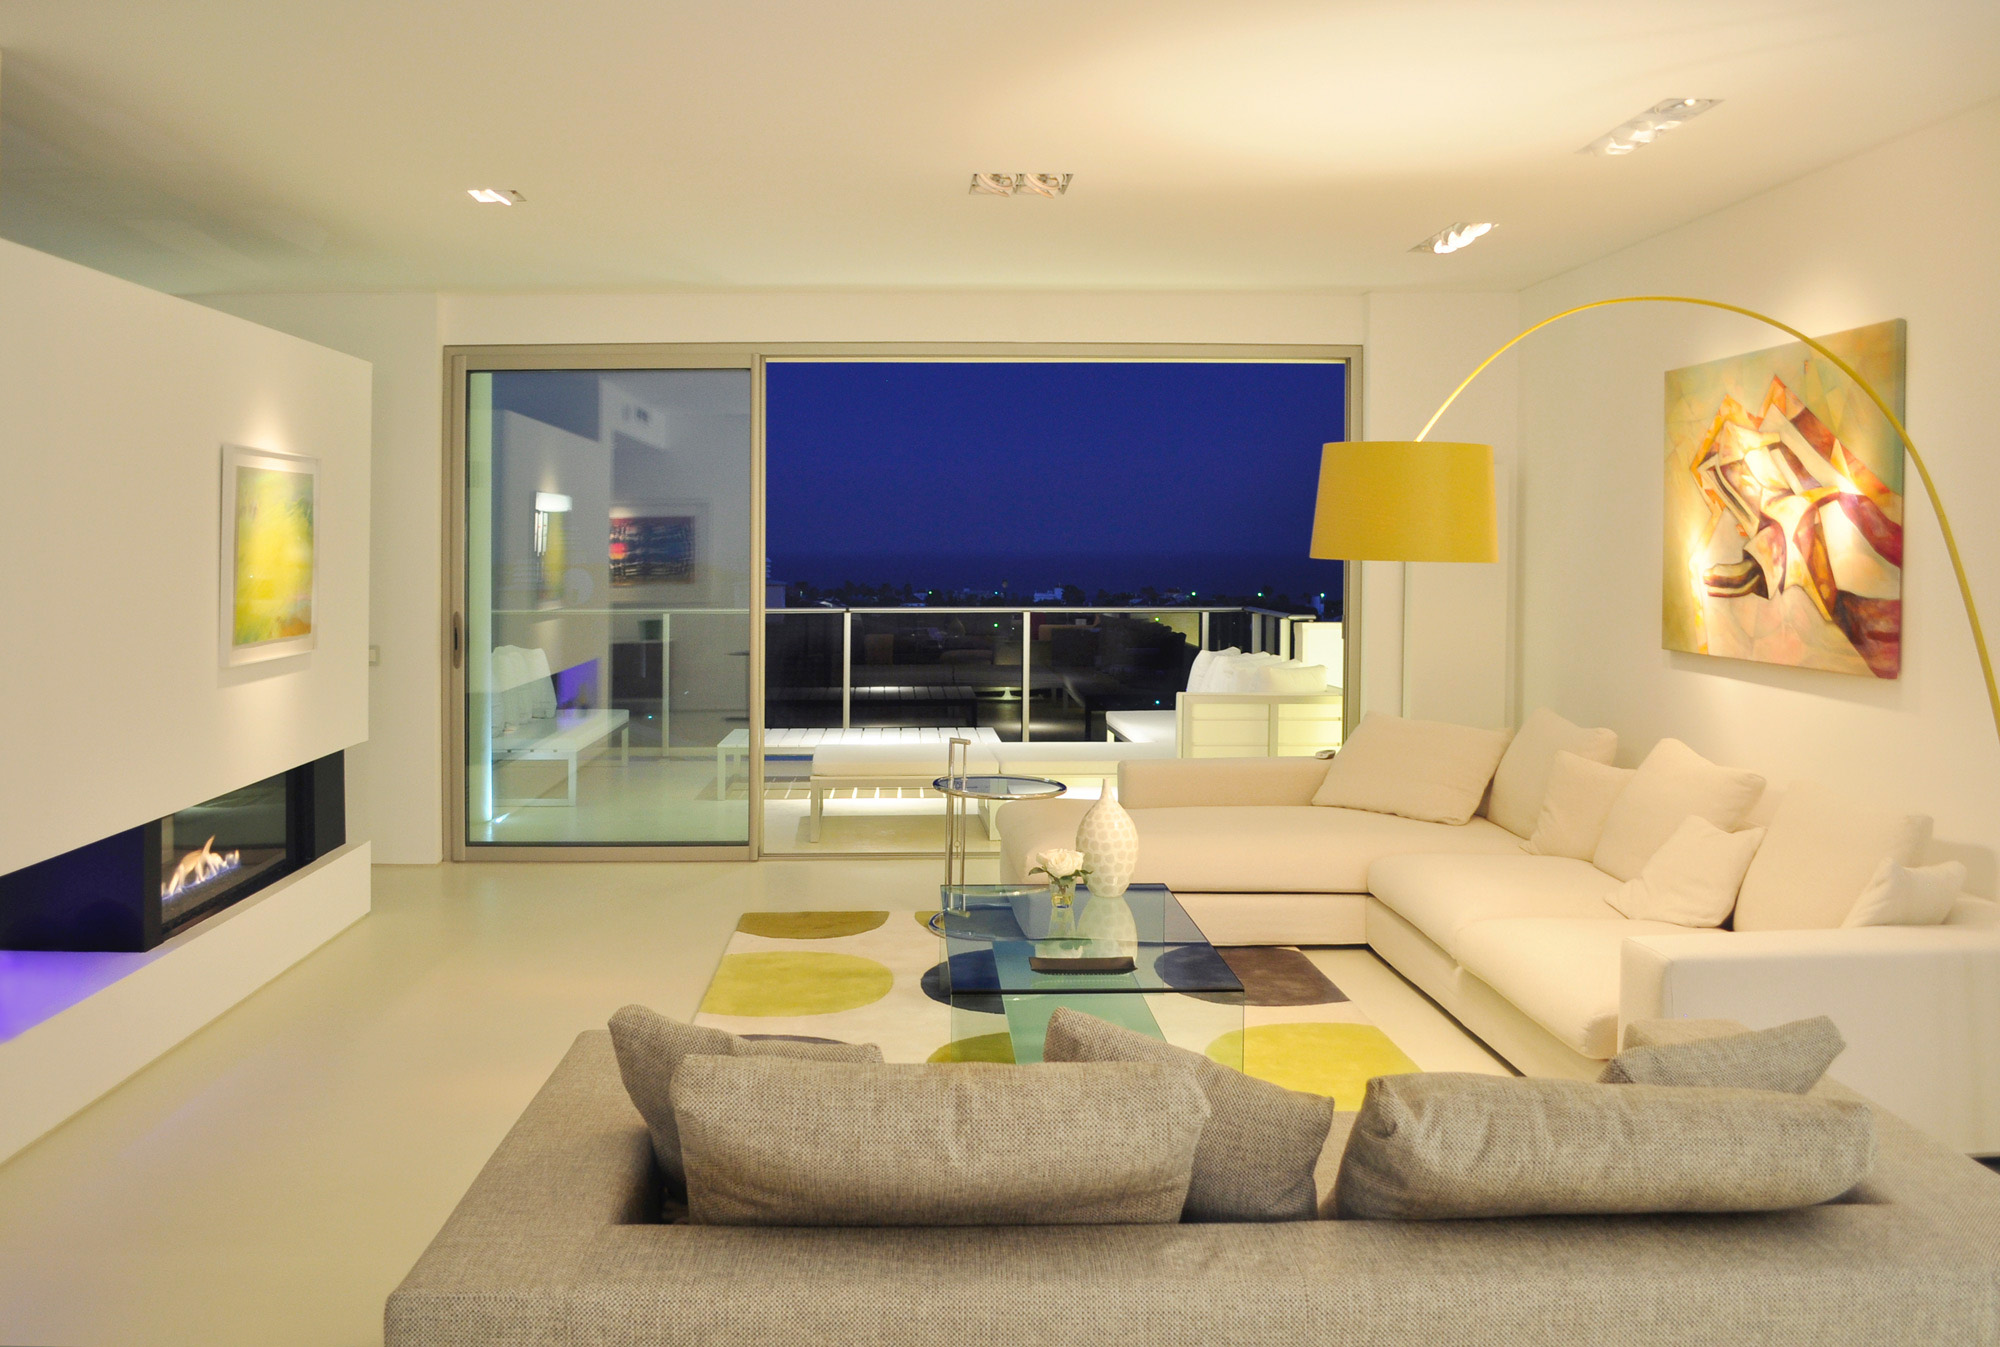 Modern living rooms: designs and ideas - RARDO-Architects